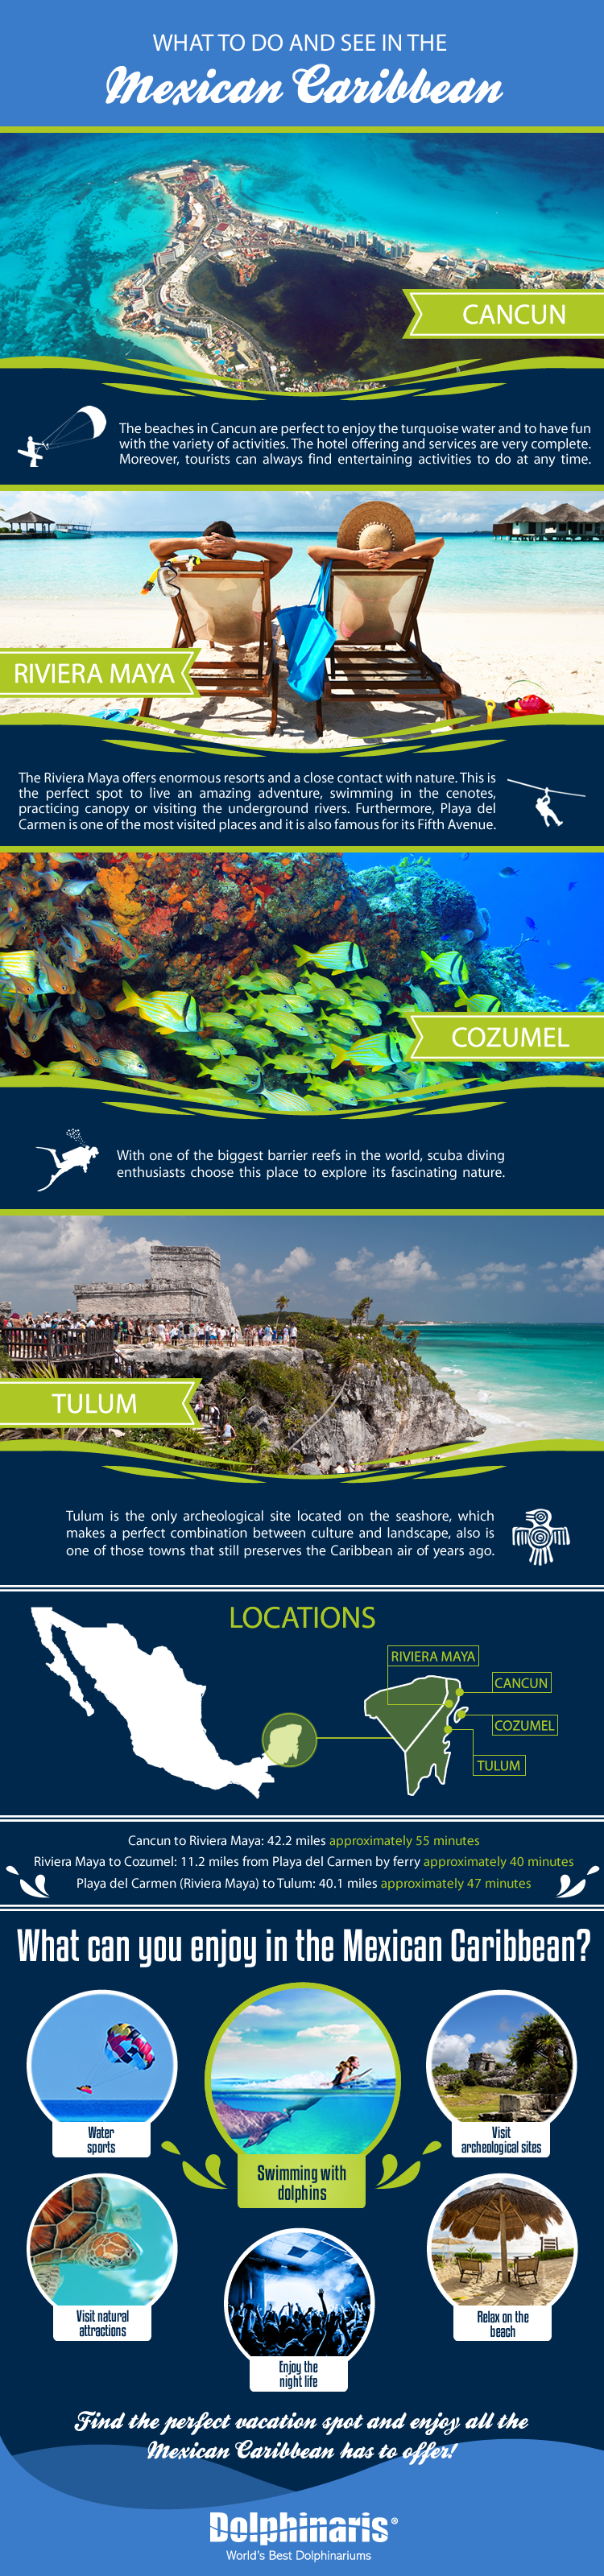 What to do and see in the Mexican Caribbean